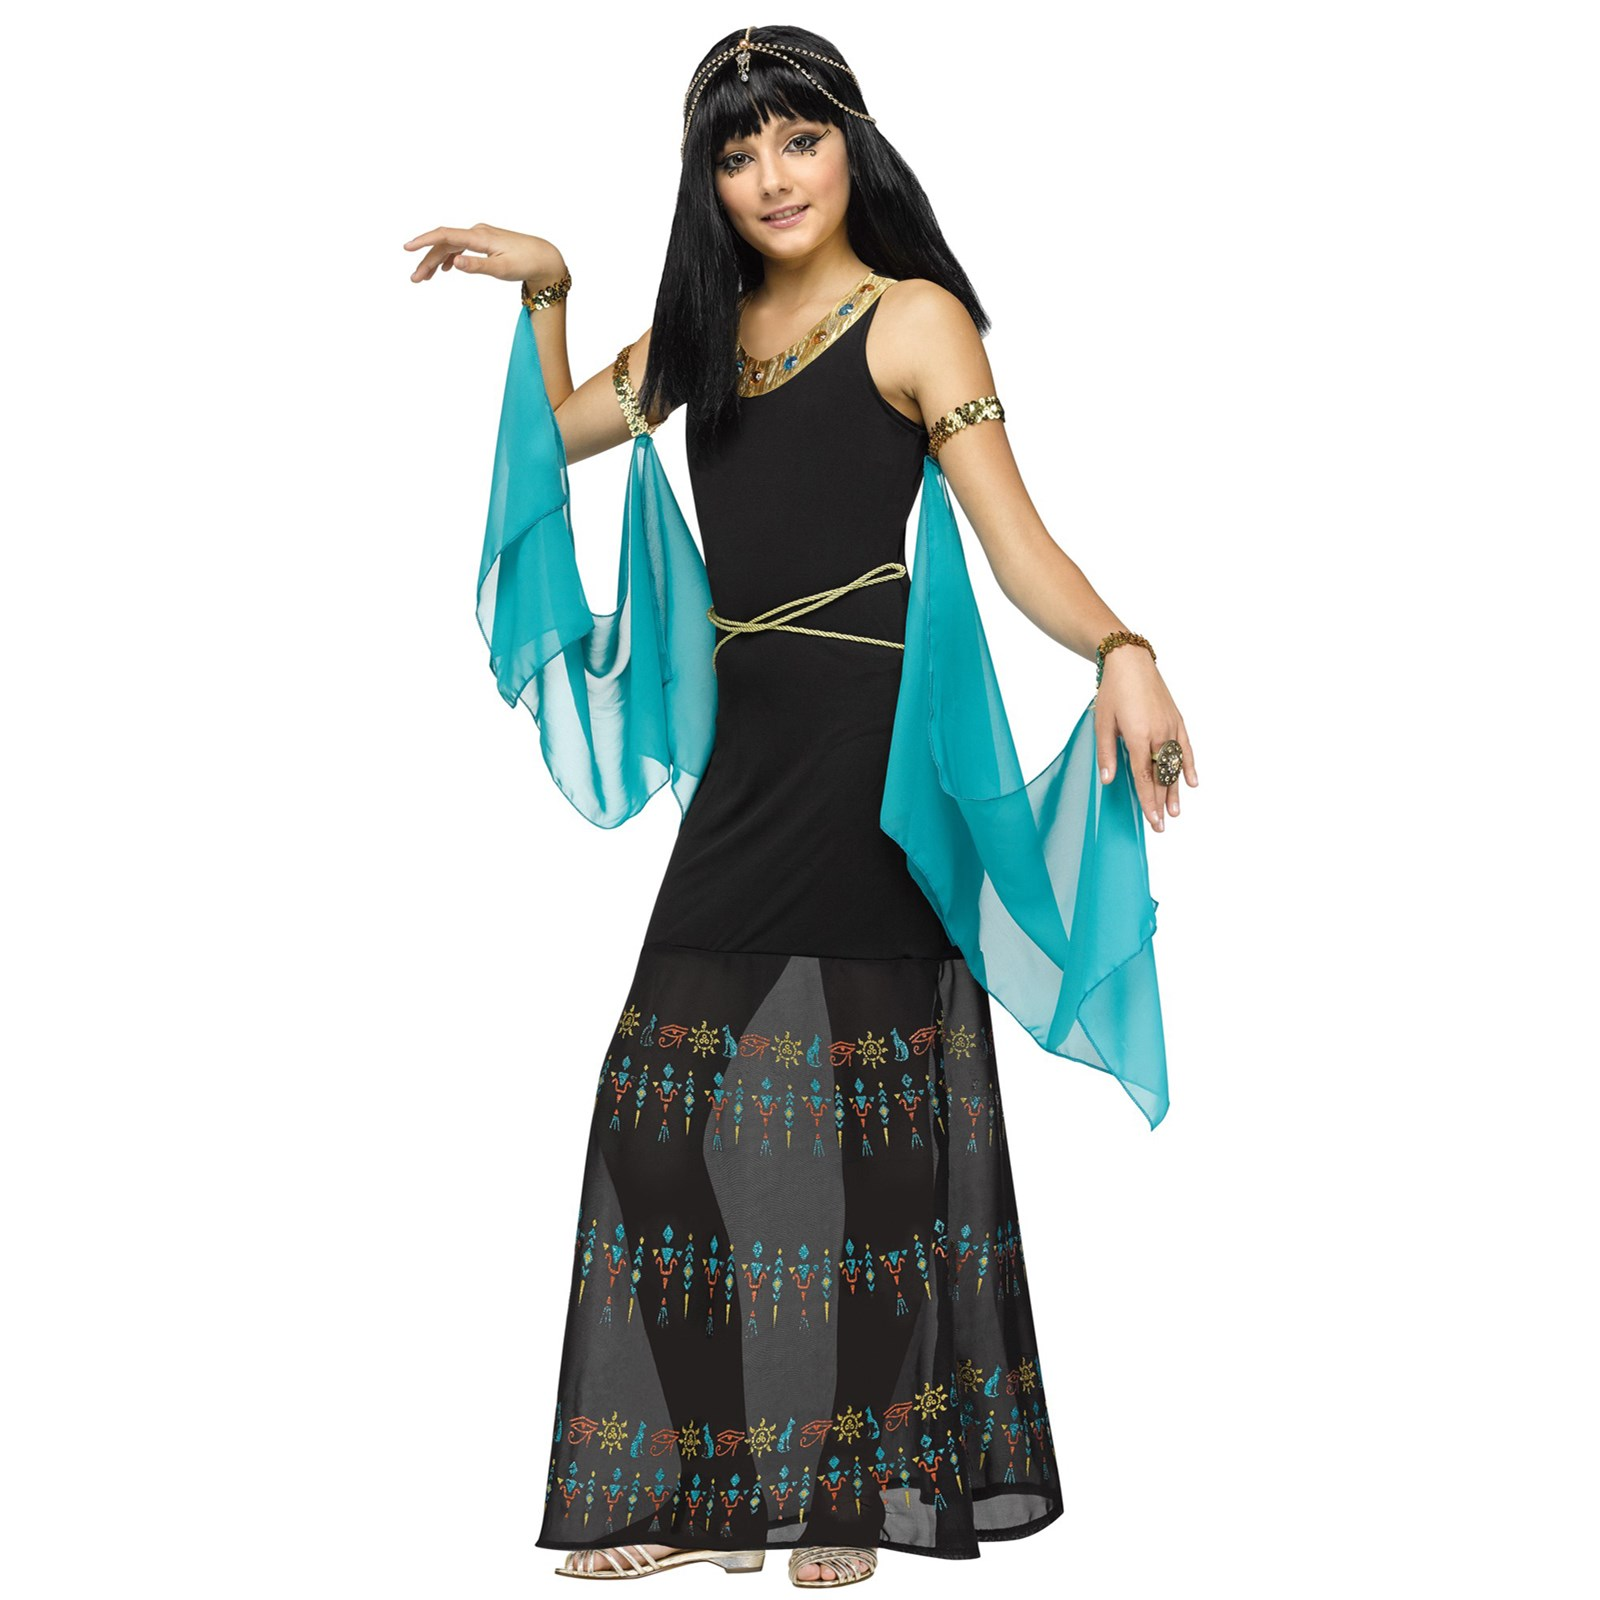 Egyptian Queen Costume For Girls | BuyCostumes.com